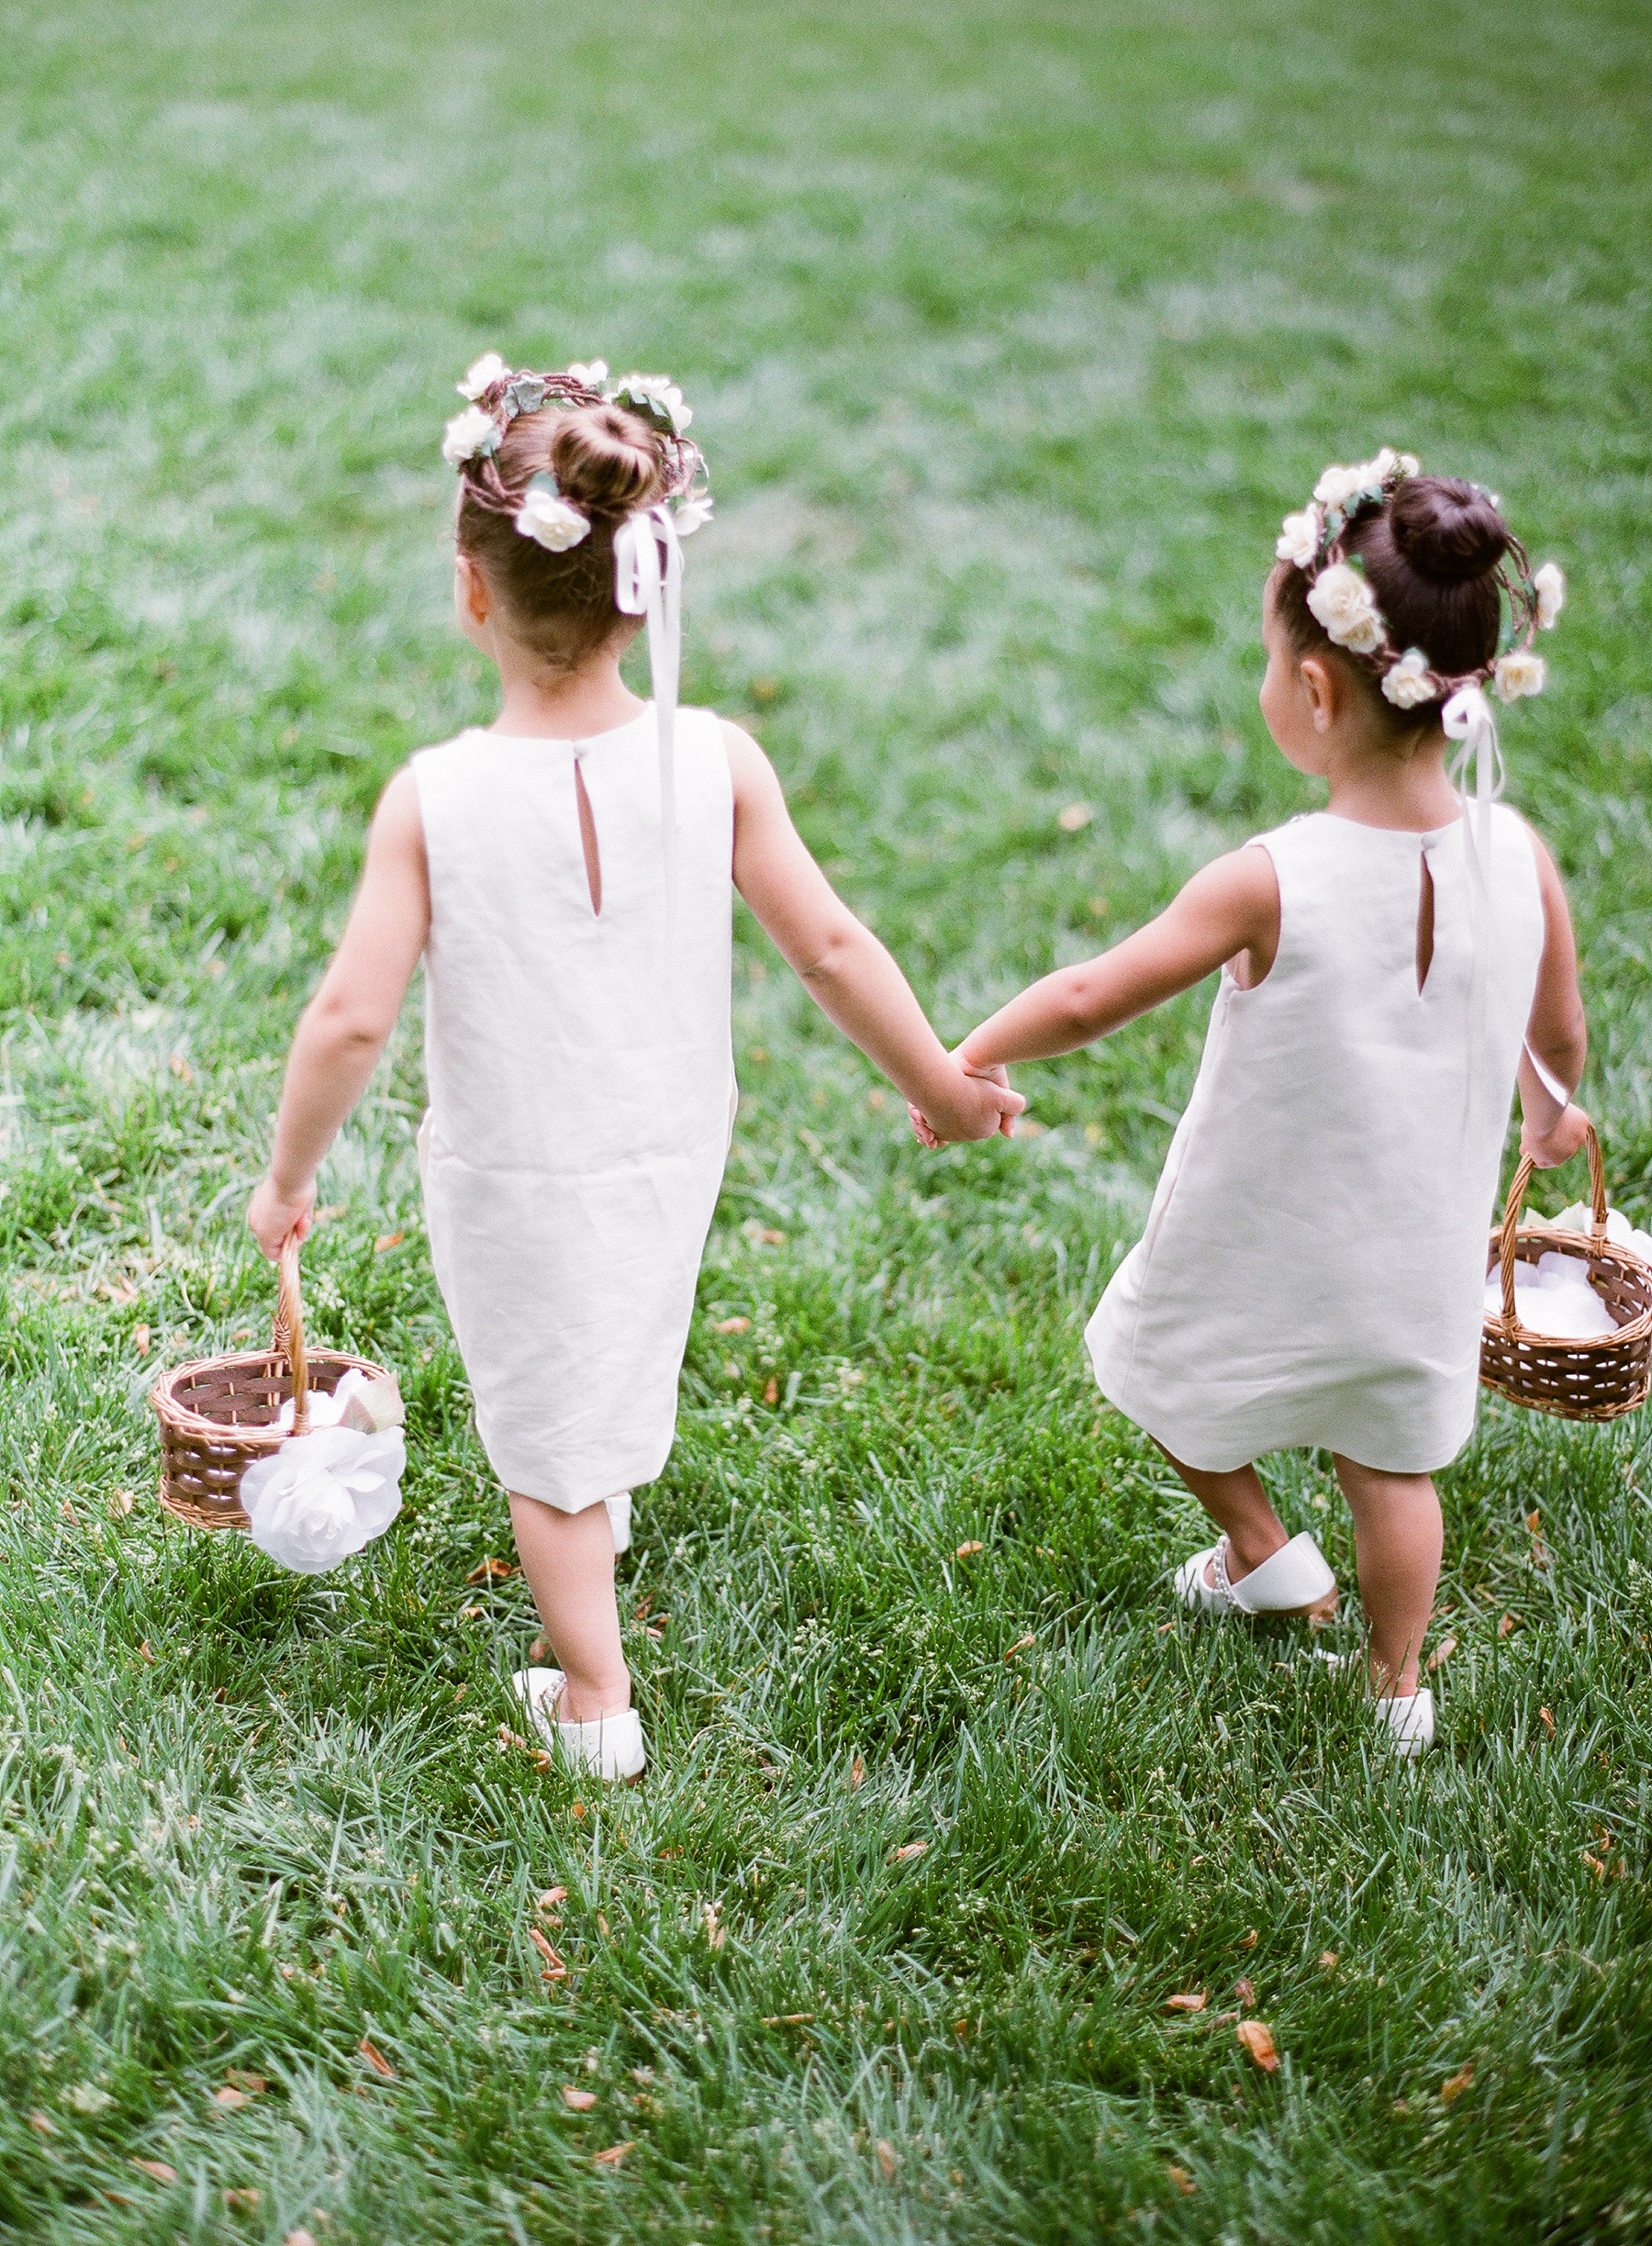 6 Foolproof Tips for Getting Your Flower Girl or Ring Bearer Down the Aisle